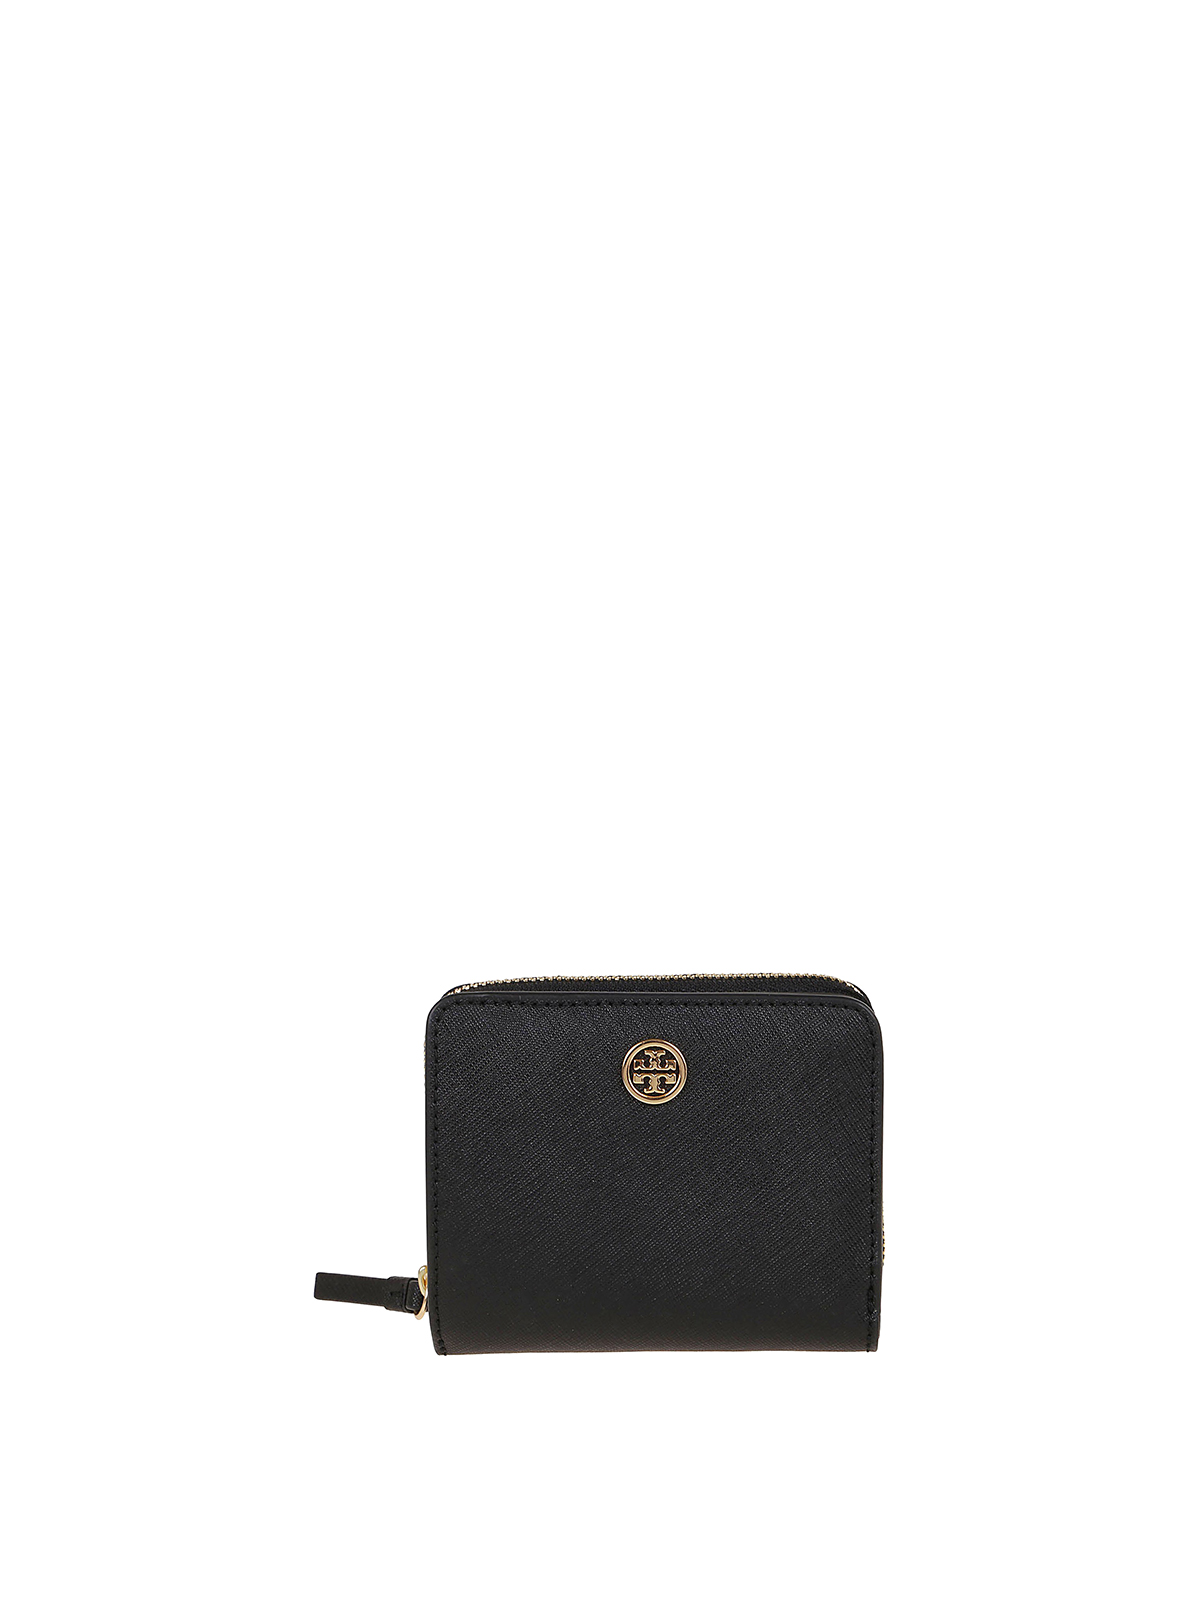 Tory Burch ROBINSON MINI BI-FOLD WALLET